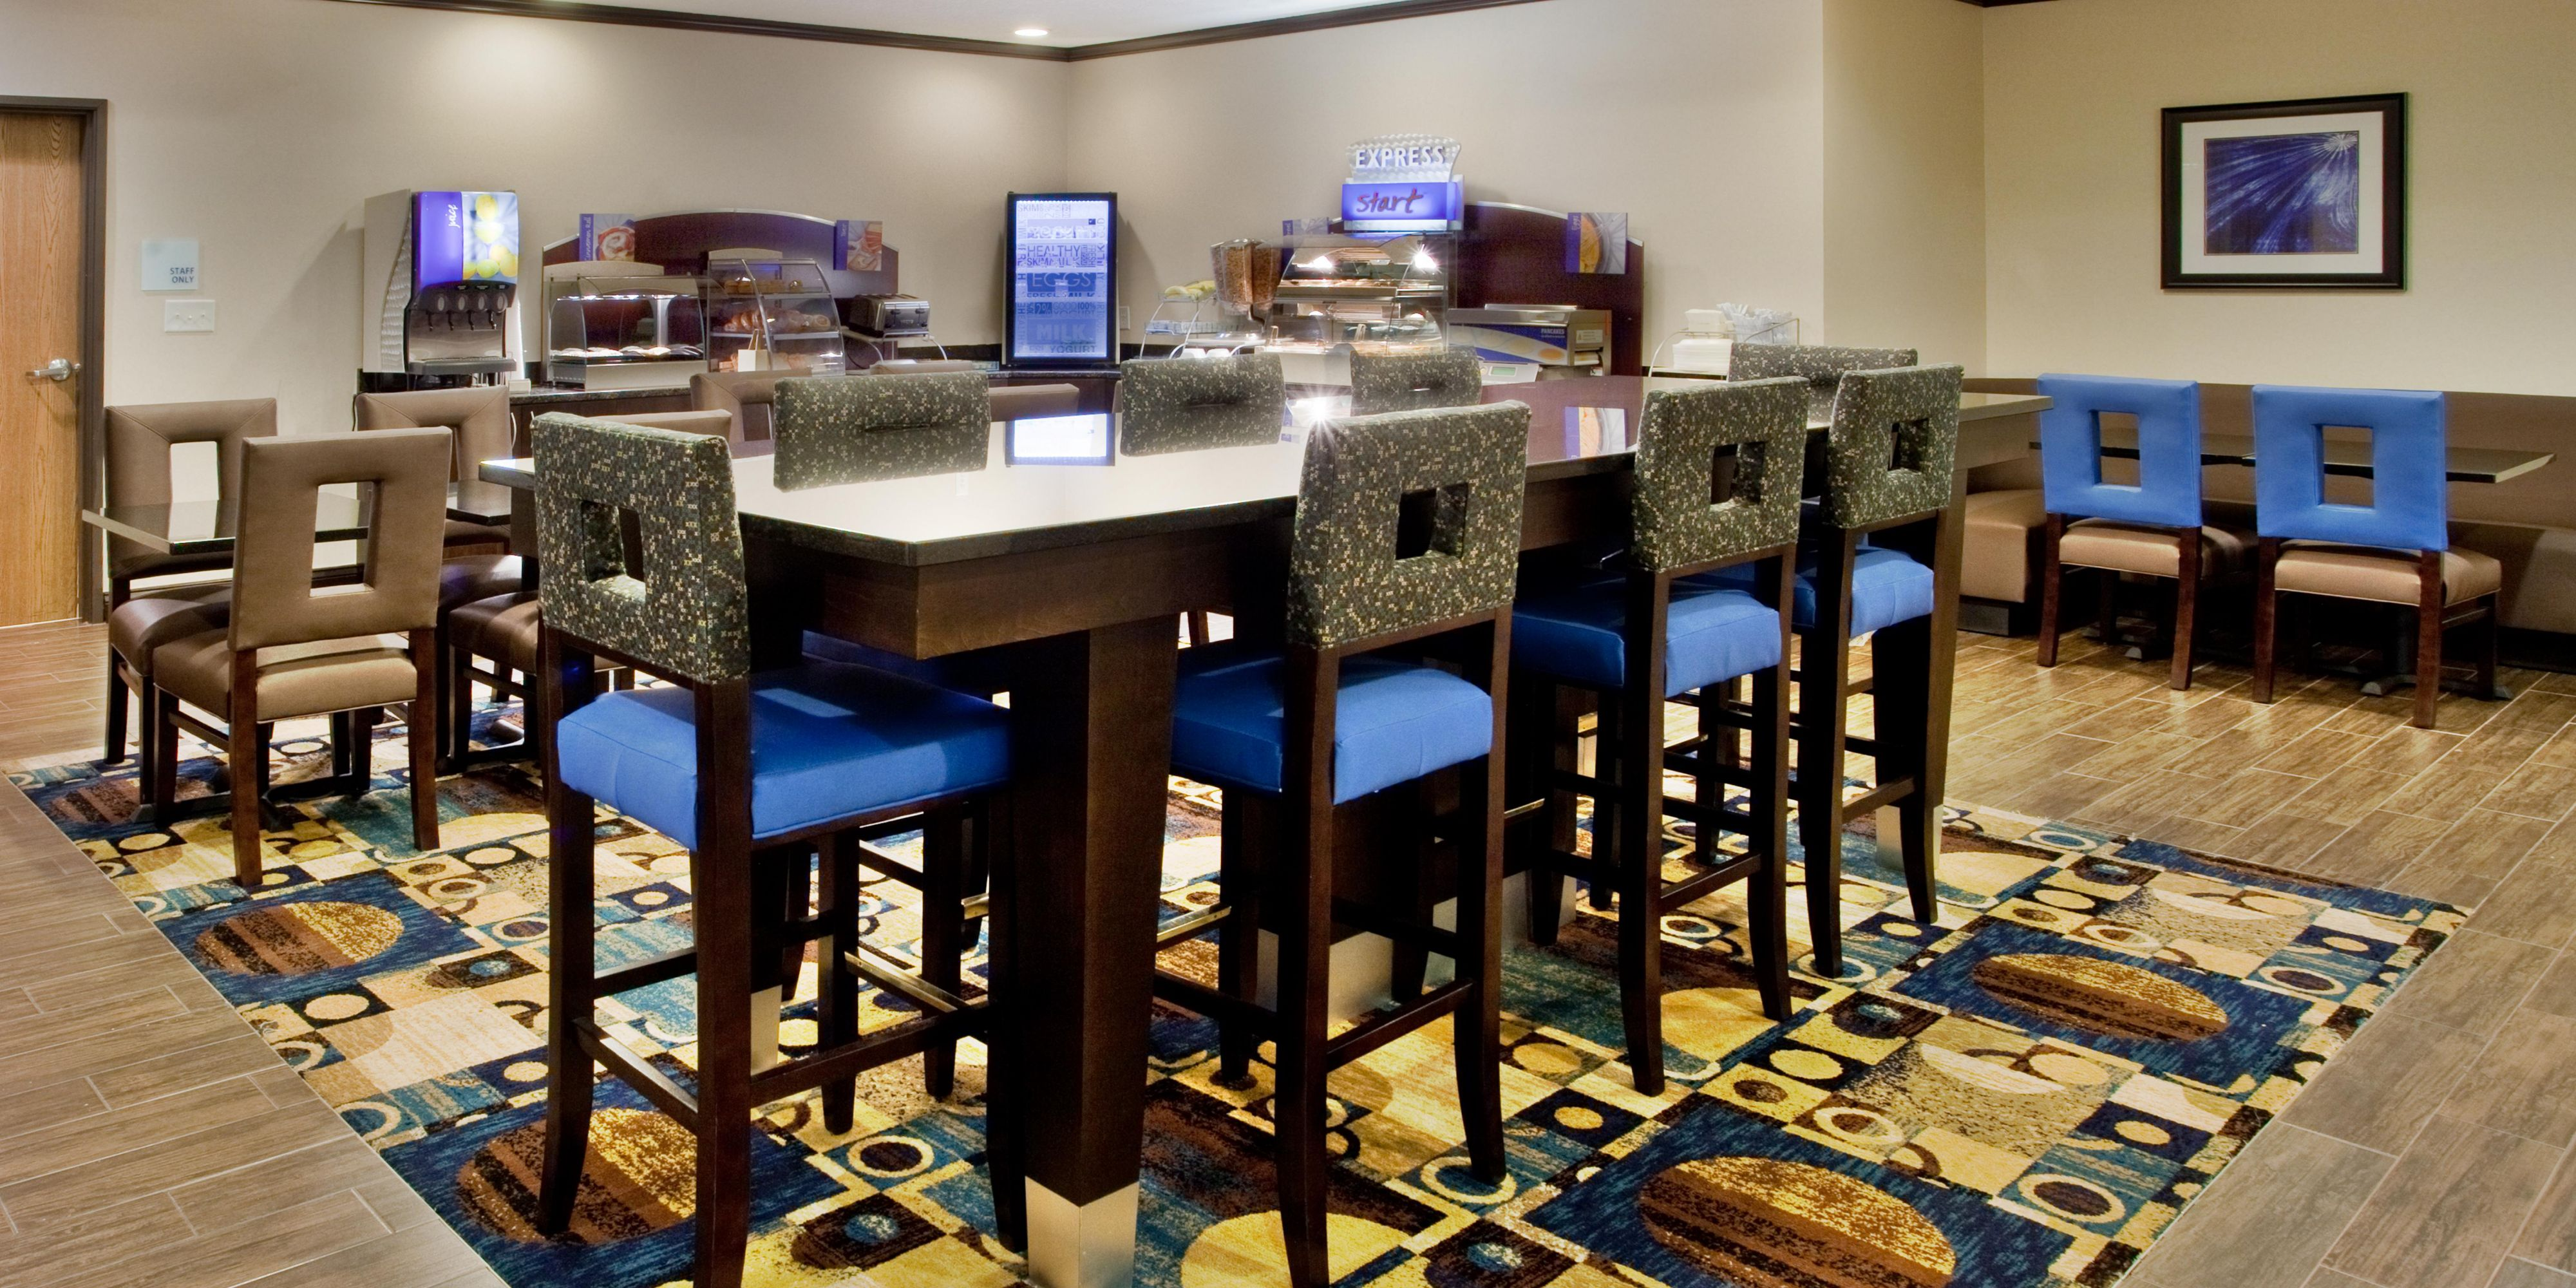 holiday-inn-express-and-suites-buford-2533129841-2x1